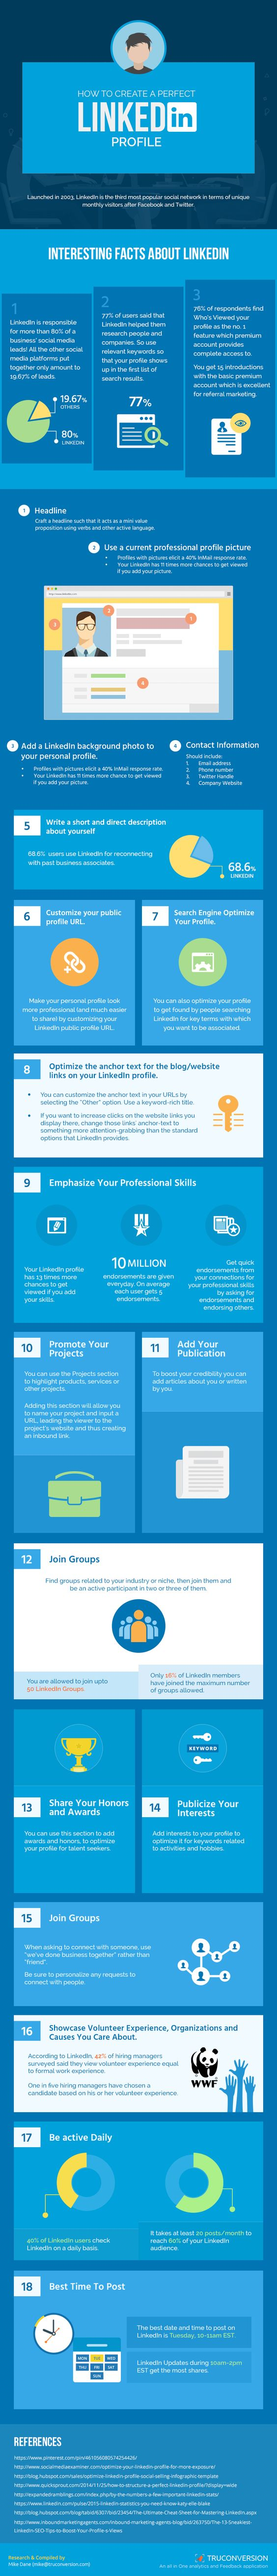 18 Tips To Create A Perfect Linkedin Profile (Infographic)